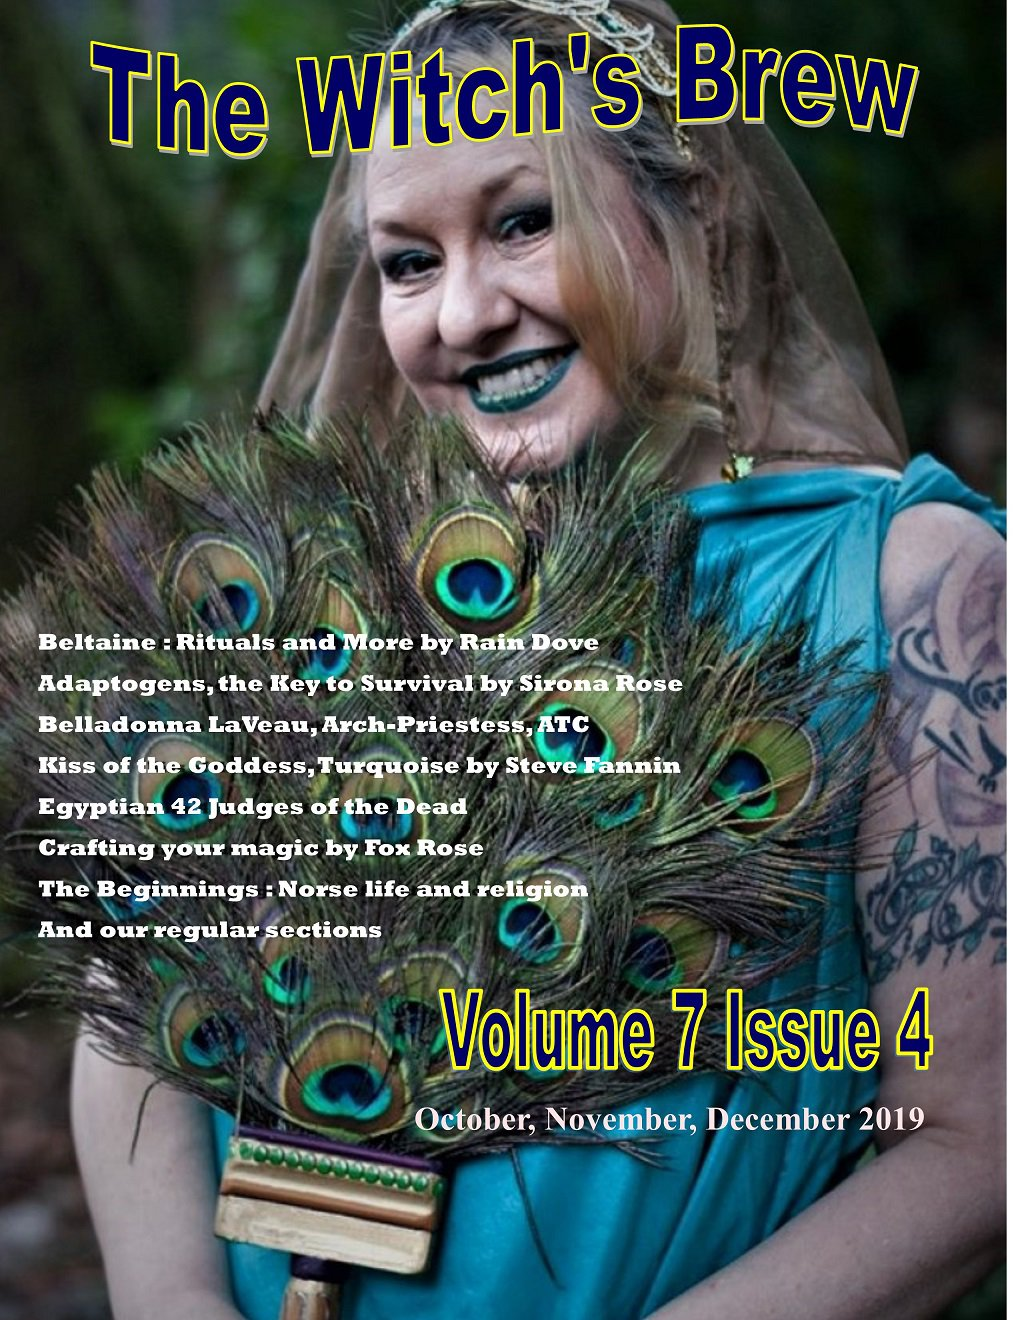 The Witch's Brew, Vol 7, Issue 4